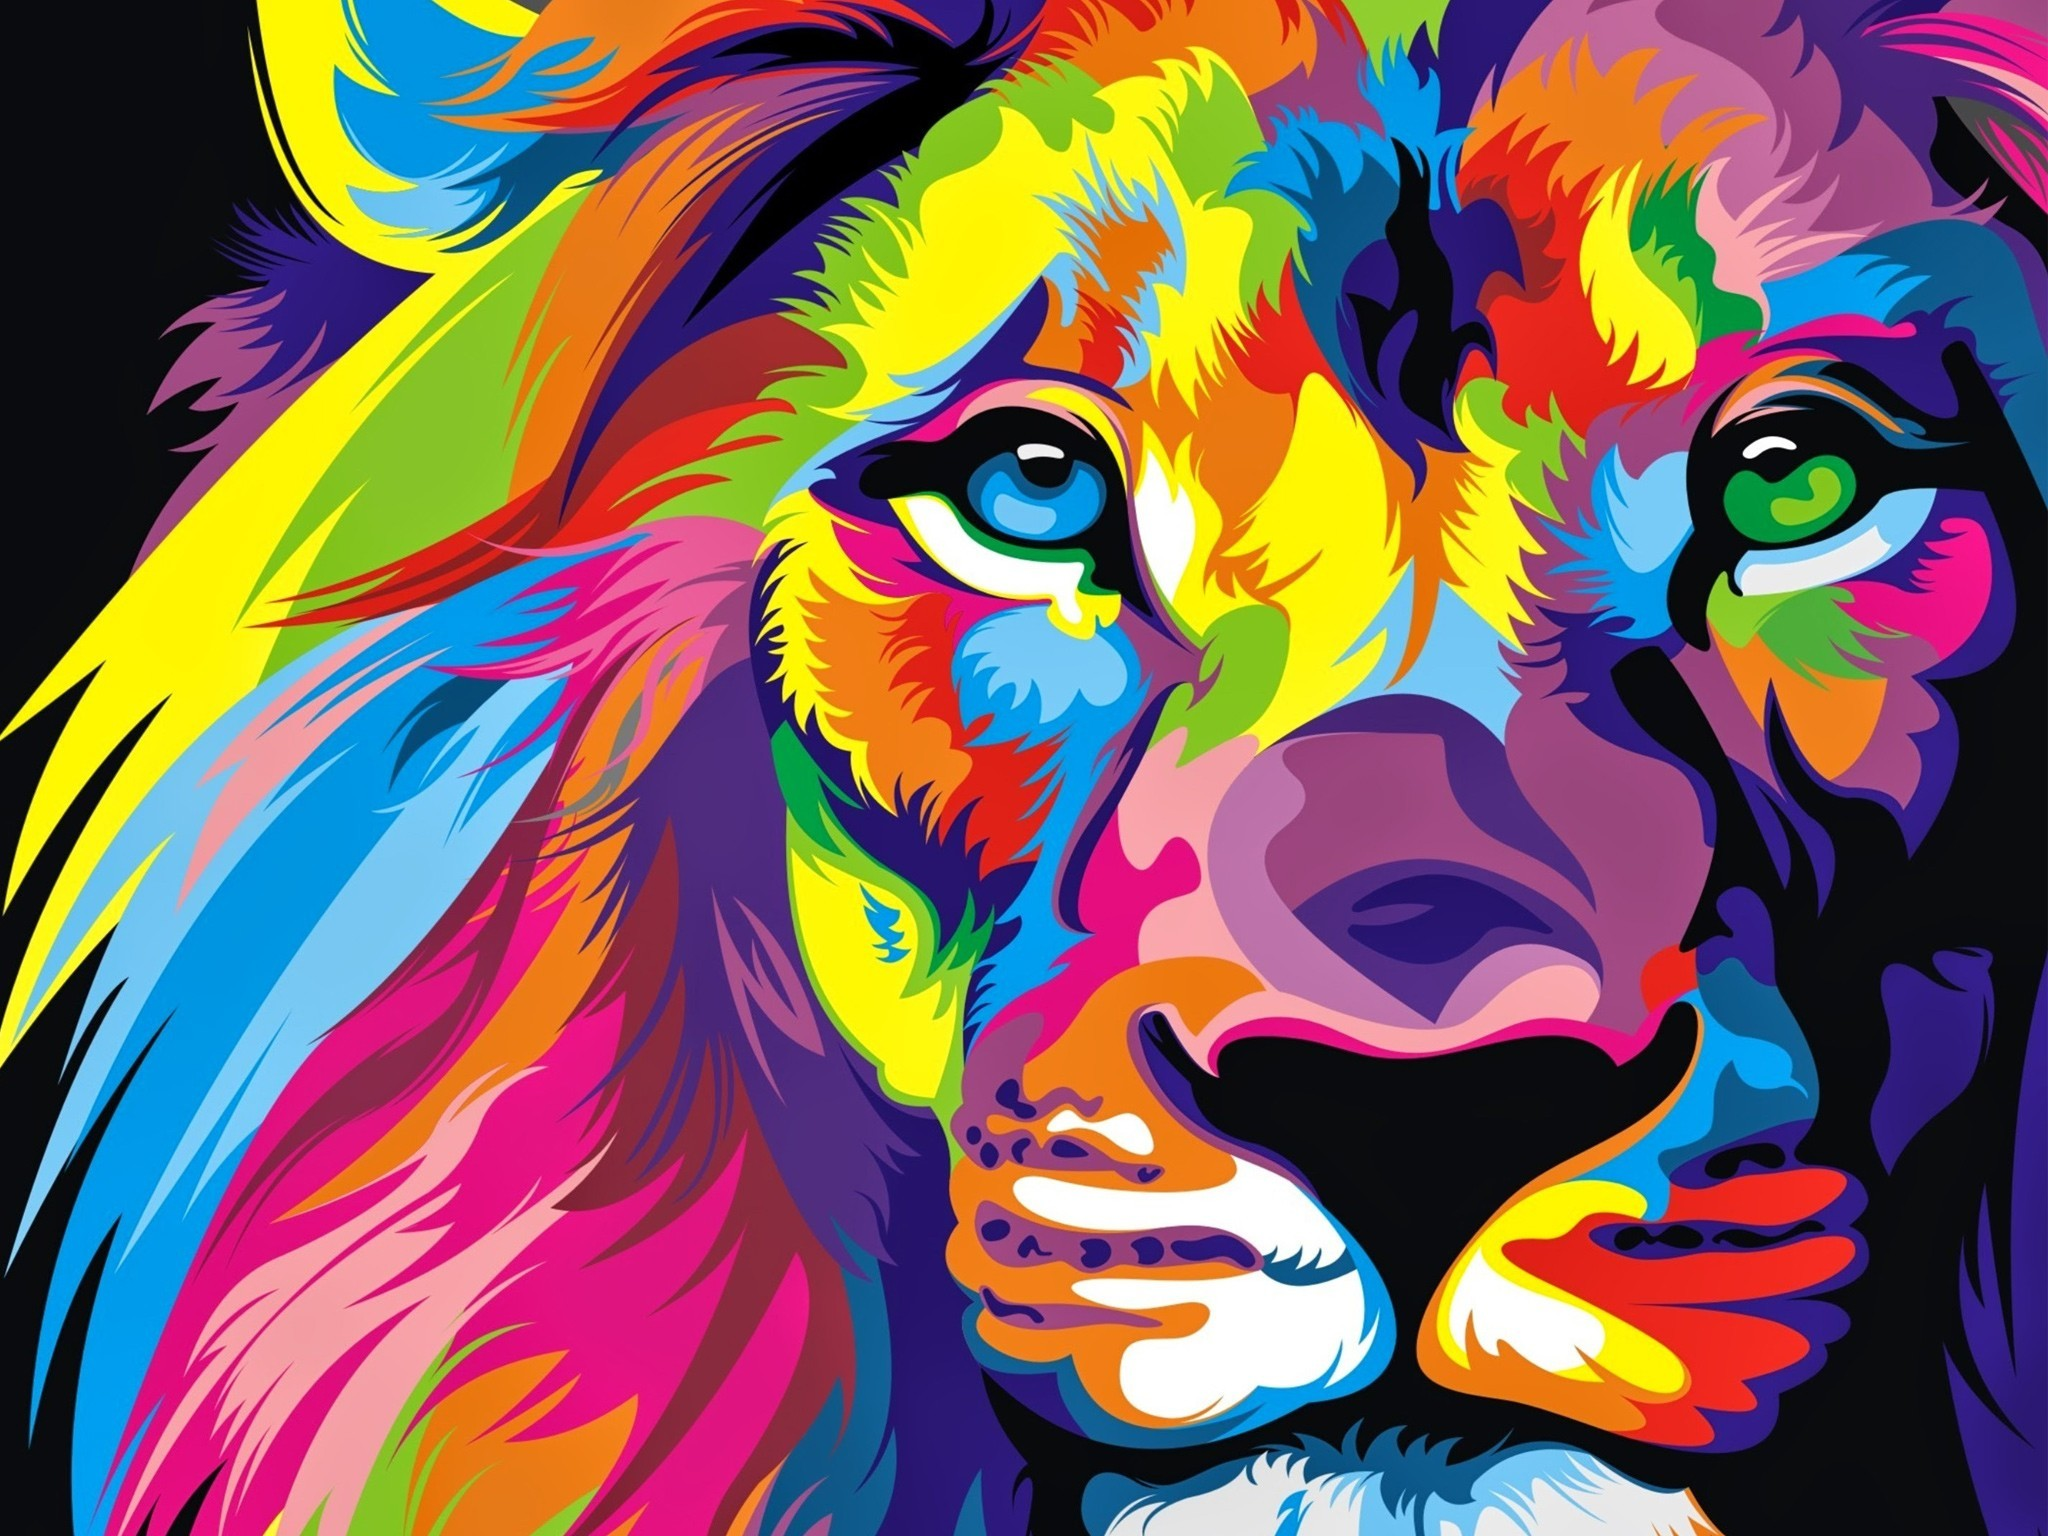 lion colorful artwork wallpapers | hd wallpapers